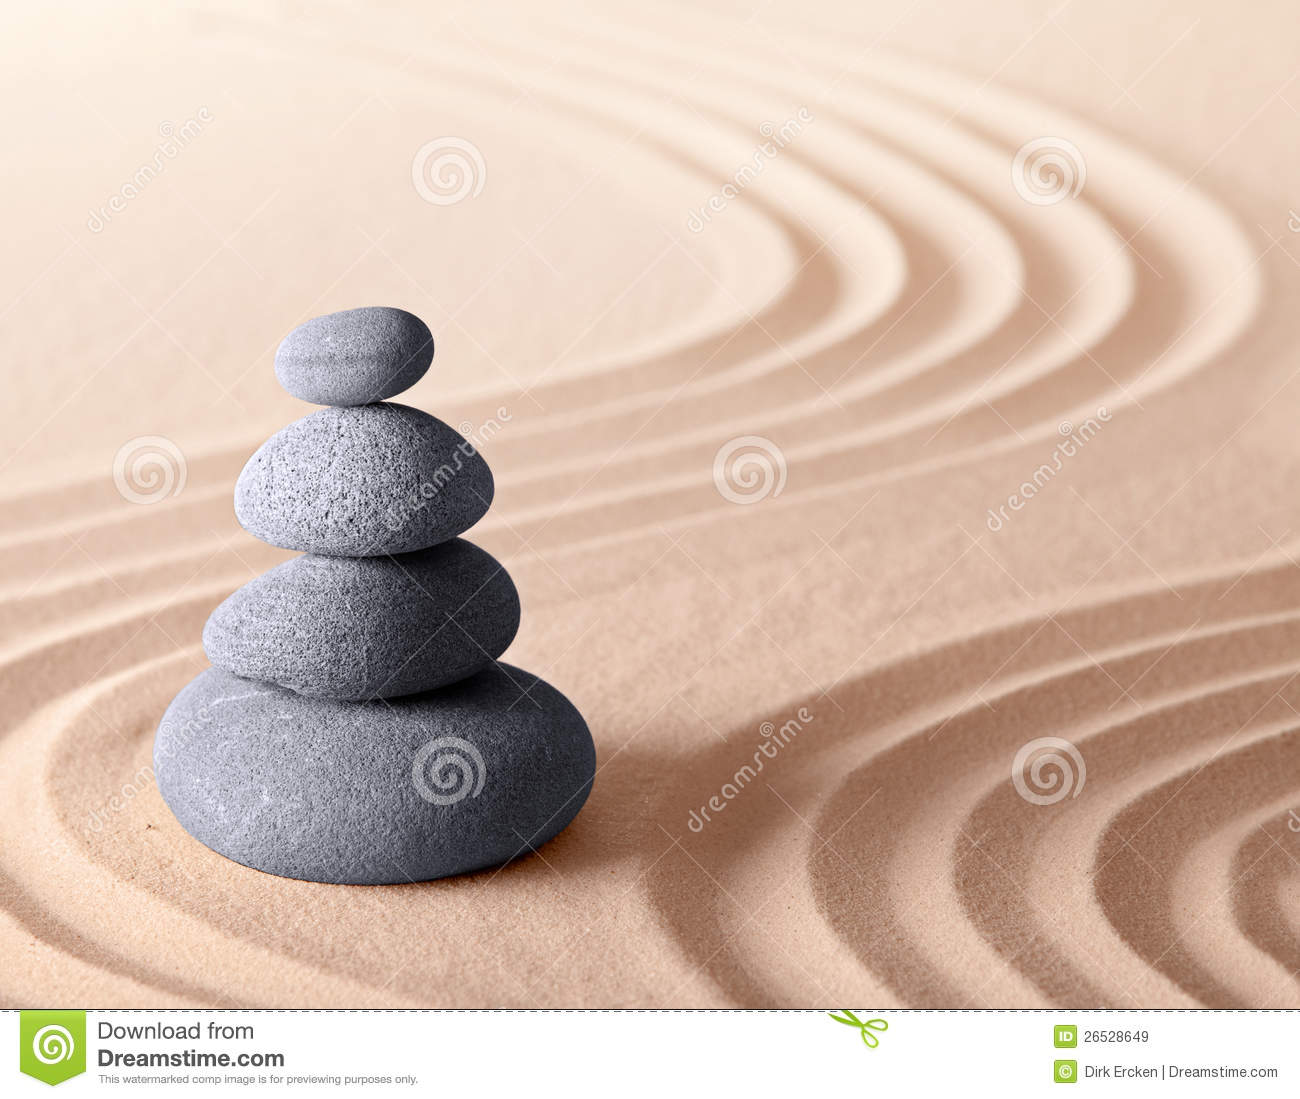 Japanese Zen Meditation Garden Stock Image - Image of stone ... on outdoor zen garden, healing garden, feng shui garden, modern zen garden, zen rock garden, zen flowers, water garden, meaning of zen garden, zen balance garden, zen walking garden, mini zen garden, zen buddhism garden, zen buddhist garden, yoga garden, small zen garden, zen reading garden, prayer garden, zen peace garden, zen dry garden, zen english garden,